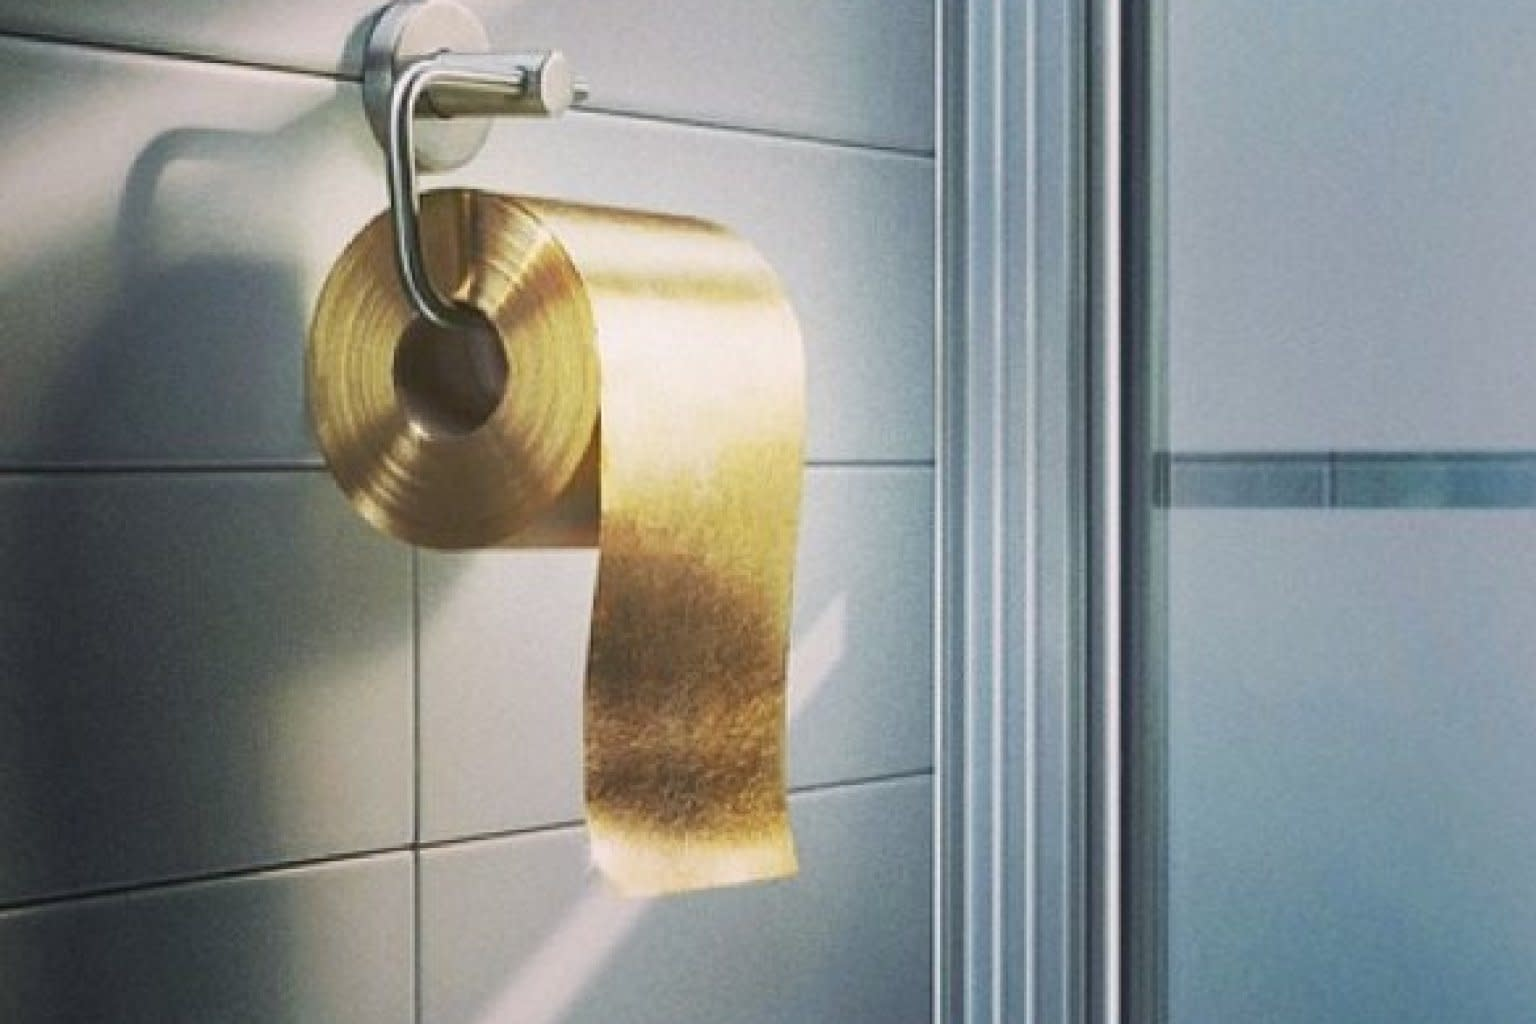 NFL says no thanks to British toilet paper: Weird Business News